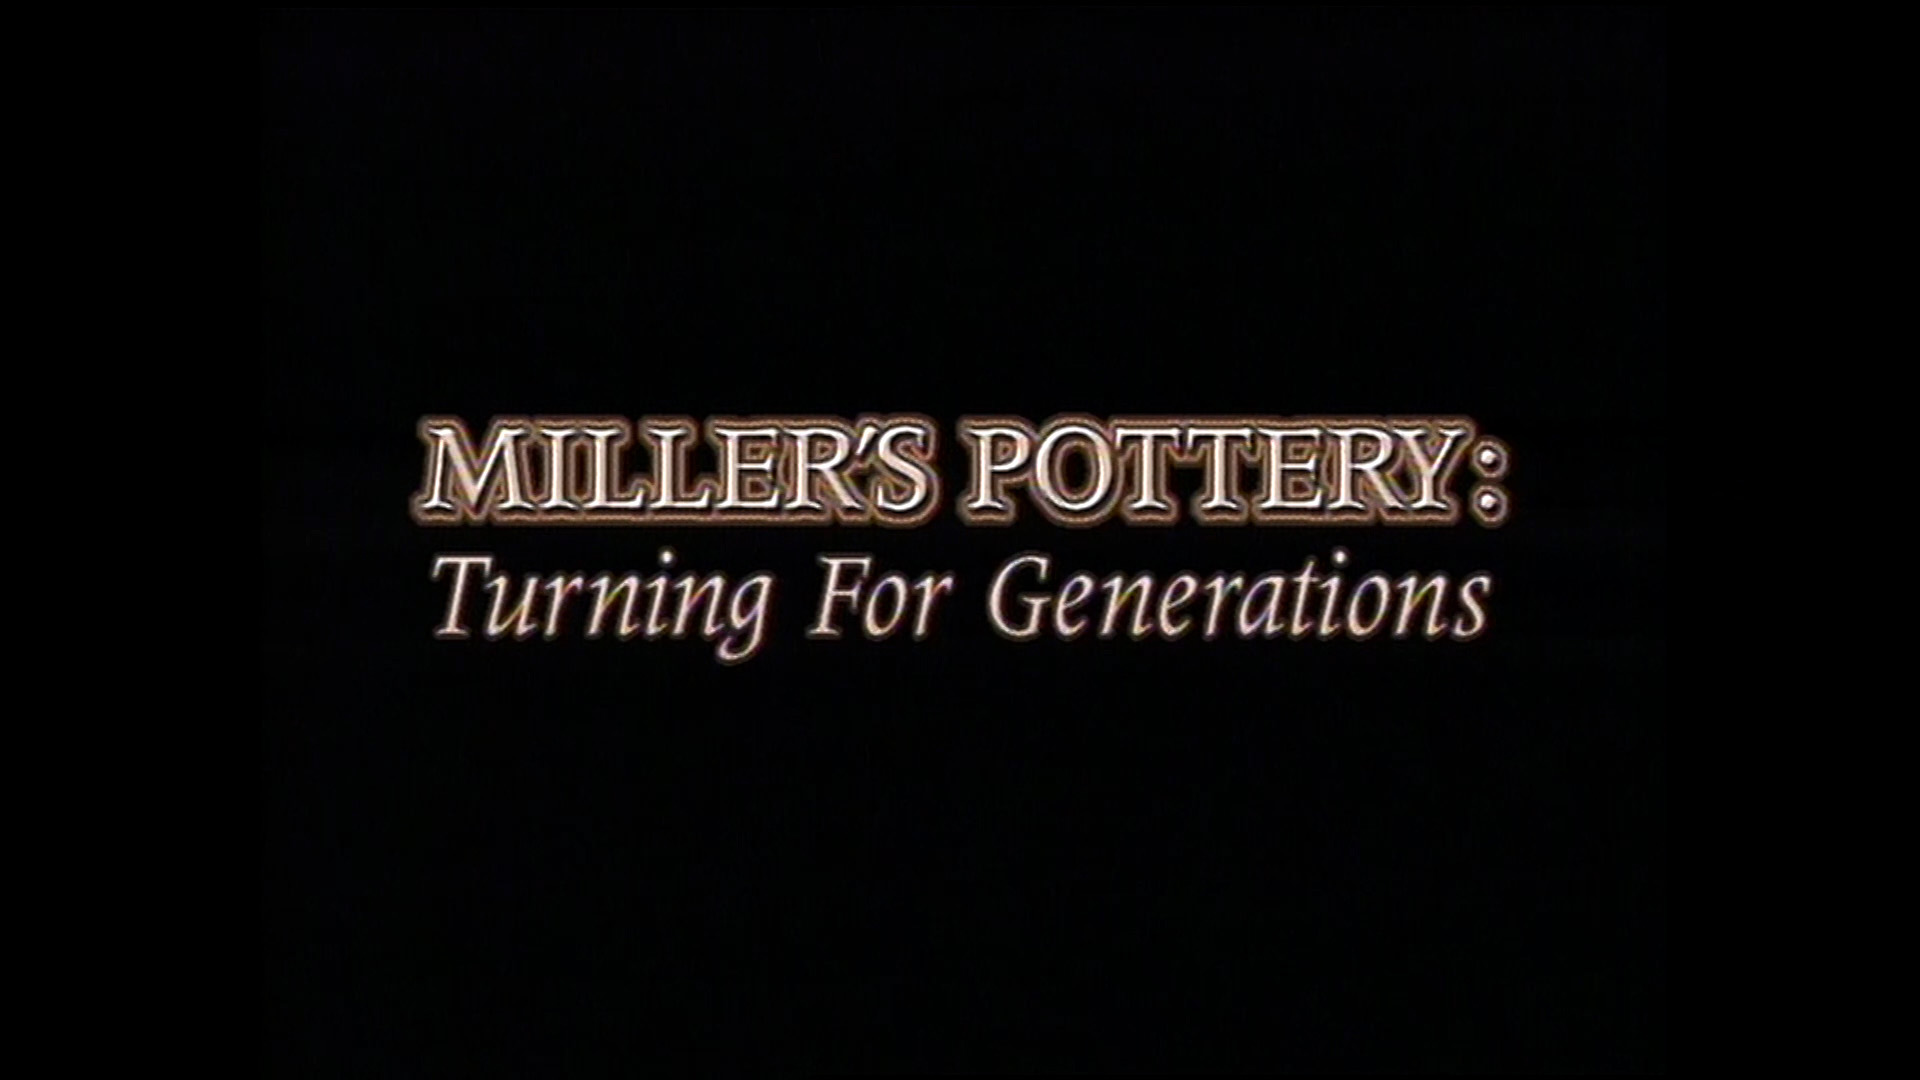 Millers Pottery in Brent, Alabama